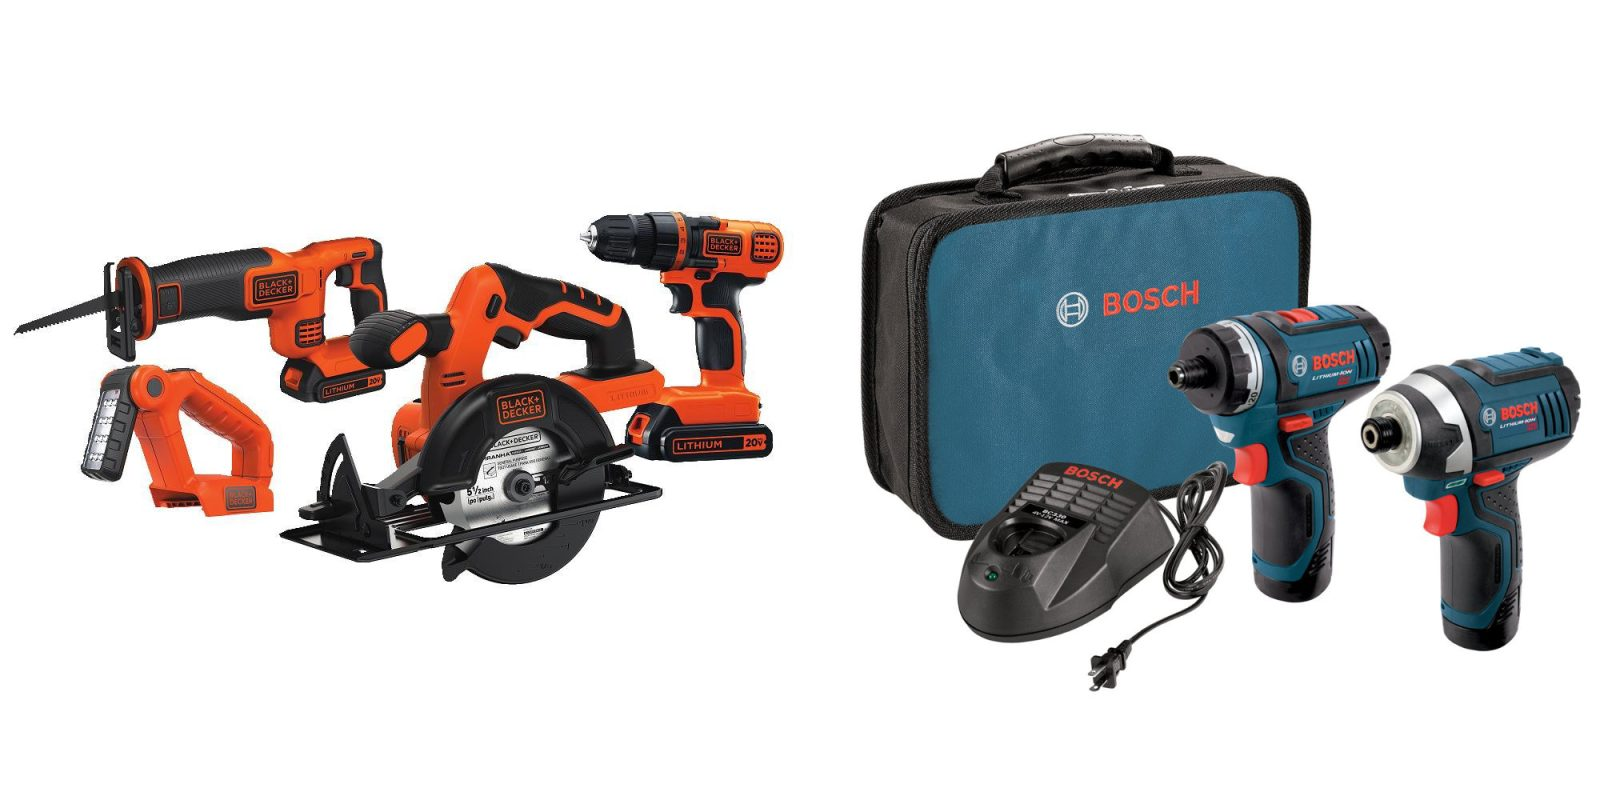 Just $99 scores a BLACK+DECKER 4-Tool or Bosch 2-piece Cordless Combo